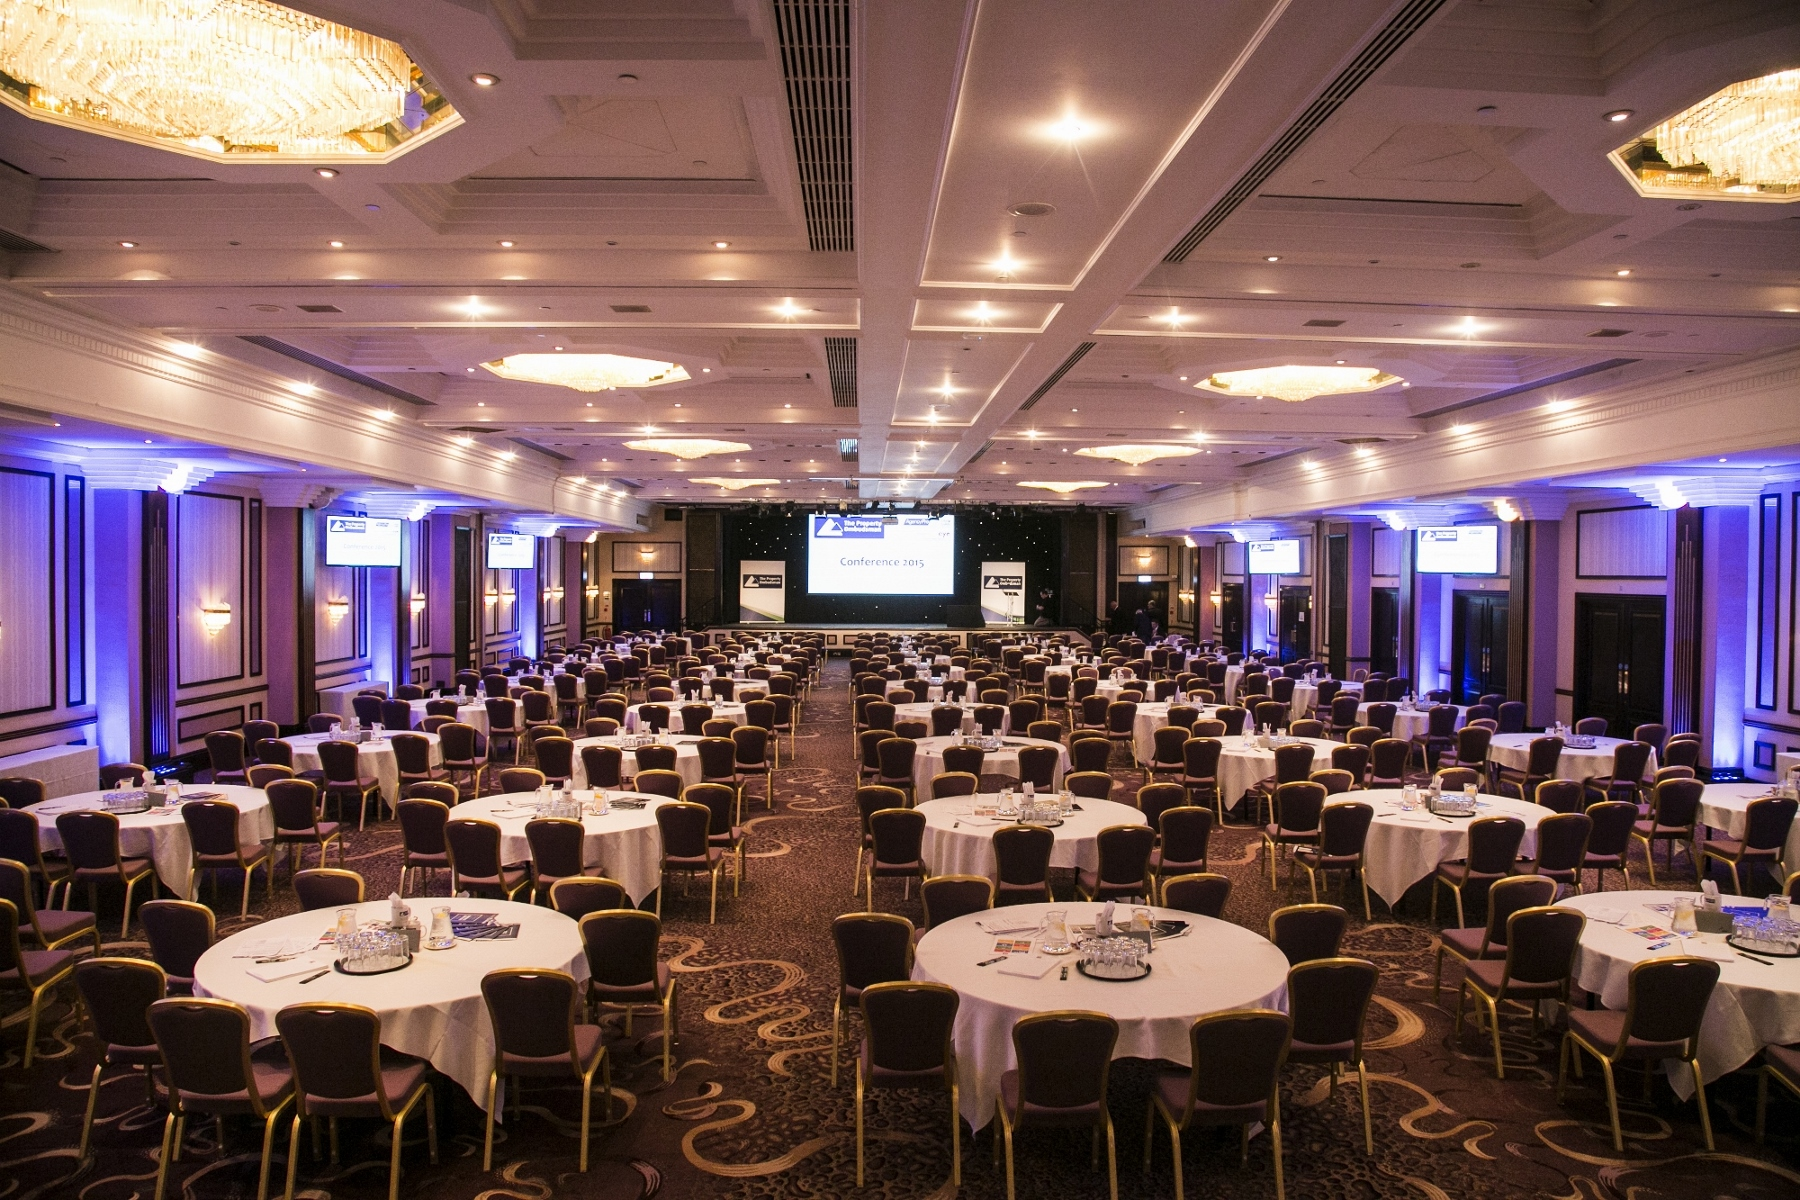 SAVE THE DATE The Property Ombudsman scheme confirm this year's conference